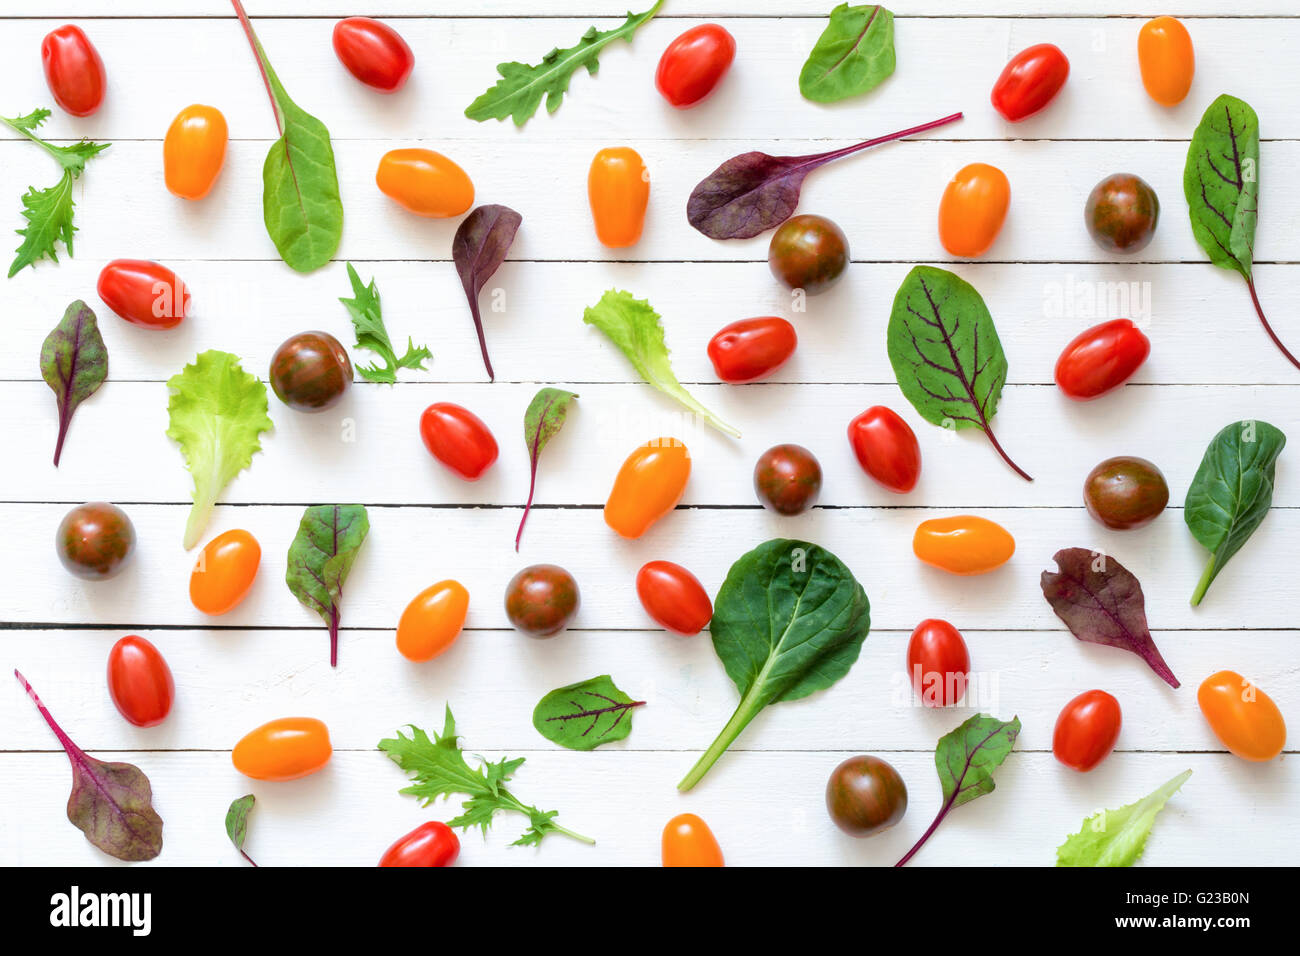 Colorful flat lay of food ingredients. Healthy food background - Stock Image